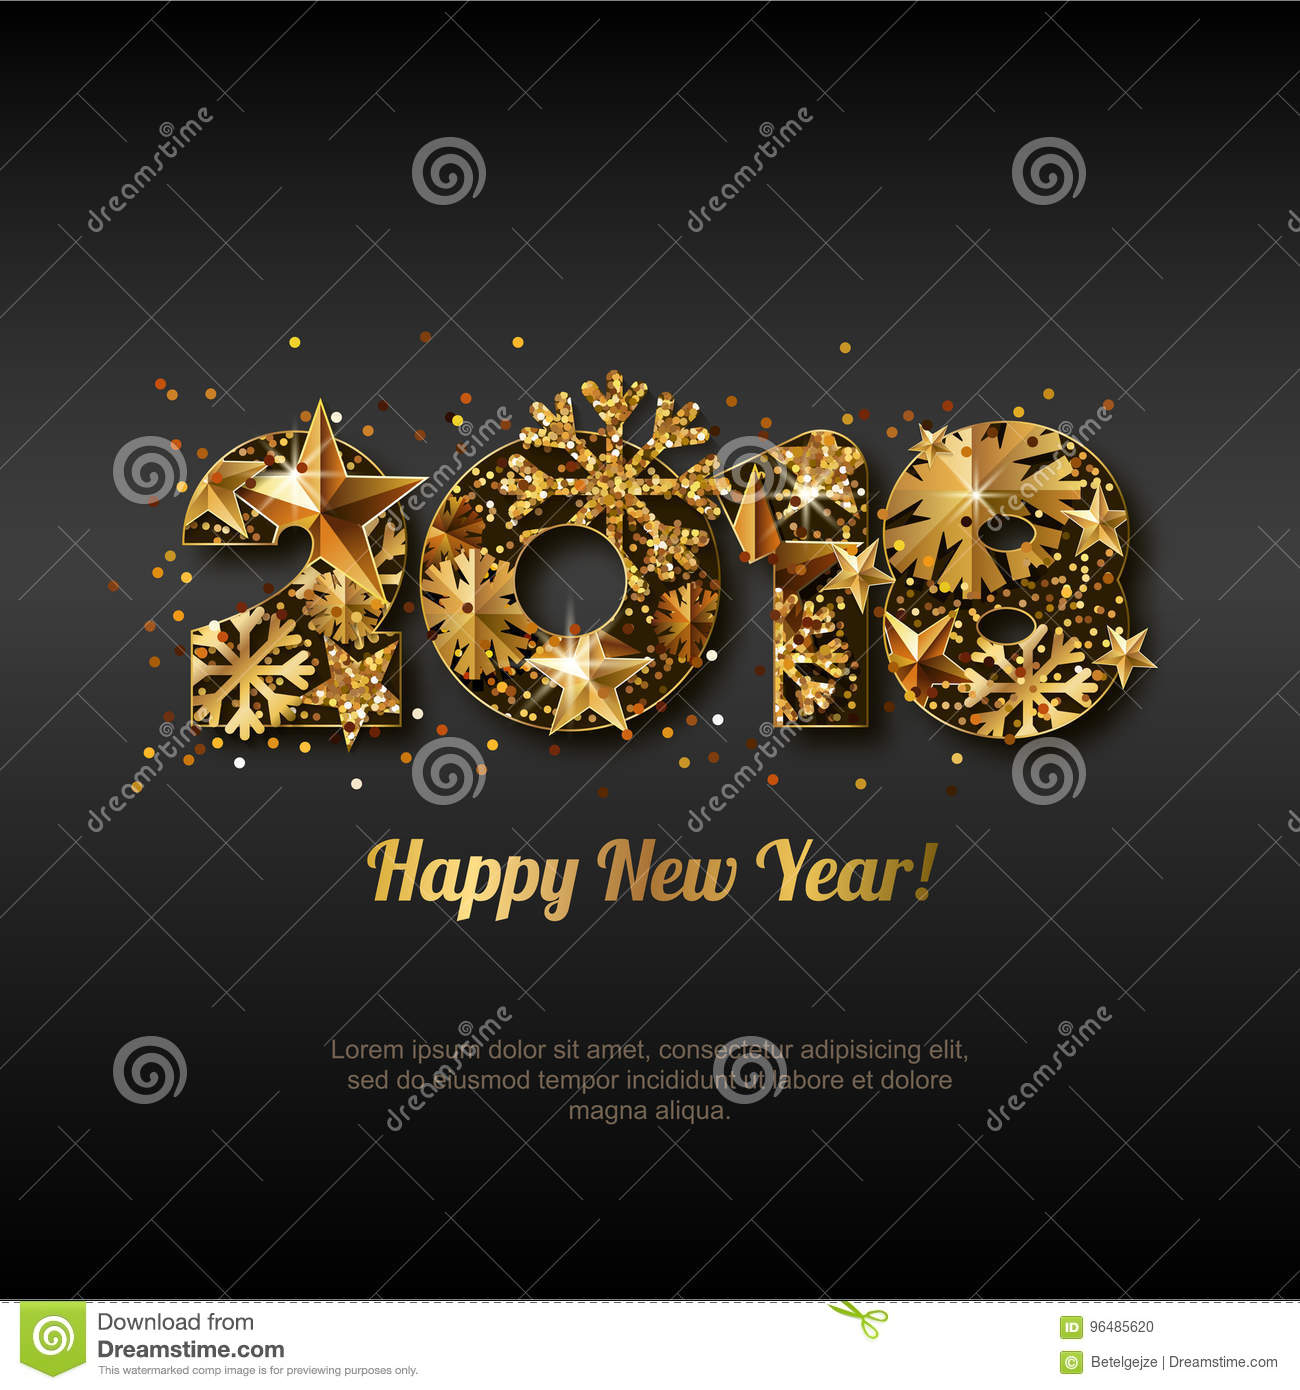 happy new year 2018 greeting card with golden numbers abstract holiday black glowing background